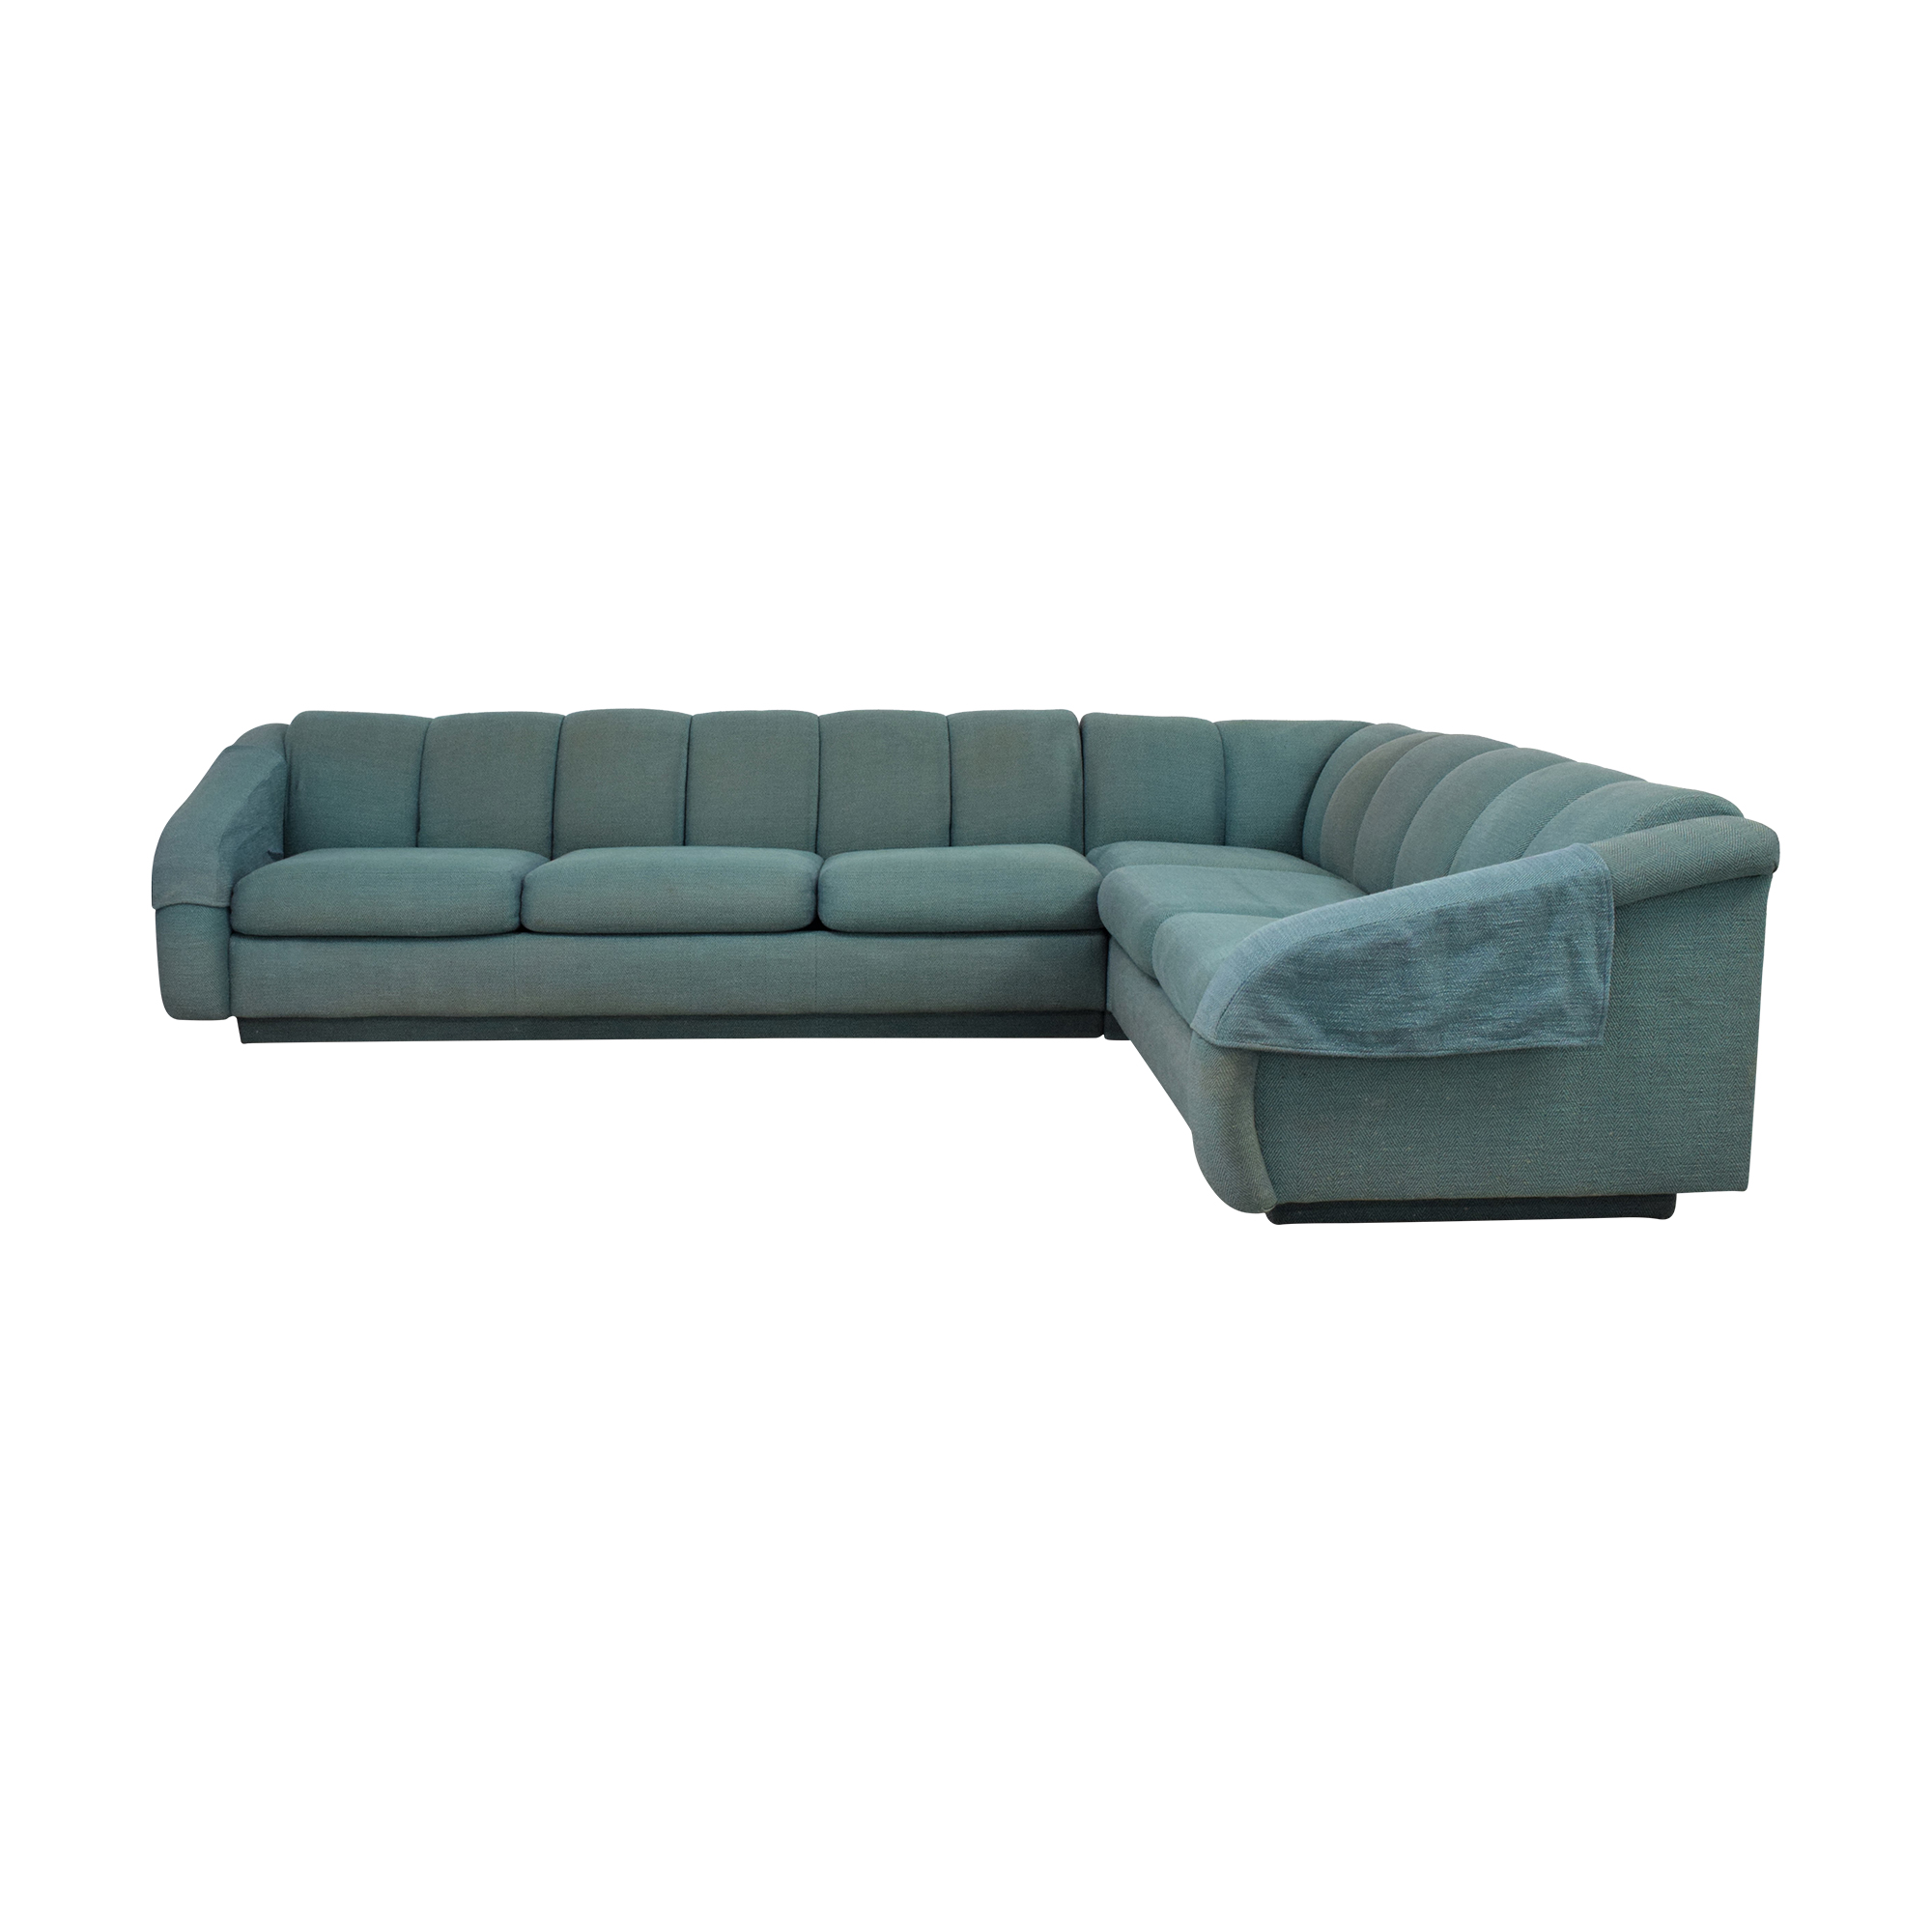 shop Directional Furniture Directional Furniture Sectional Sofa online